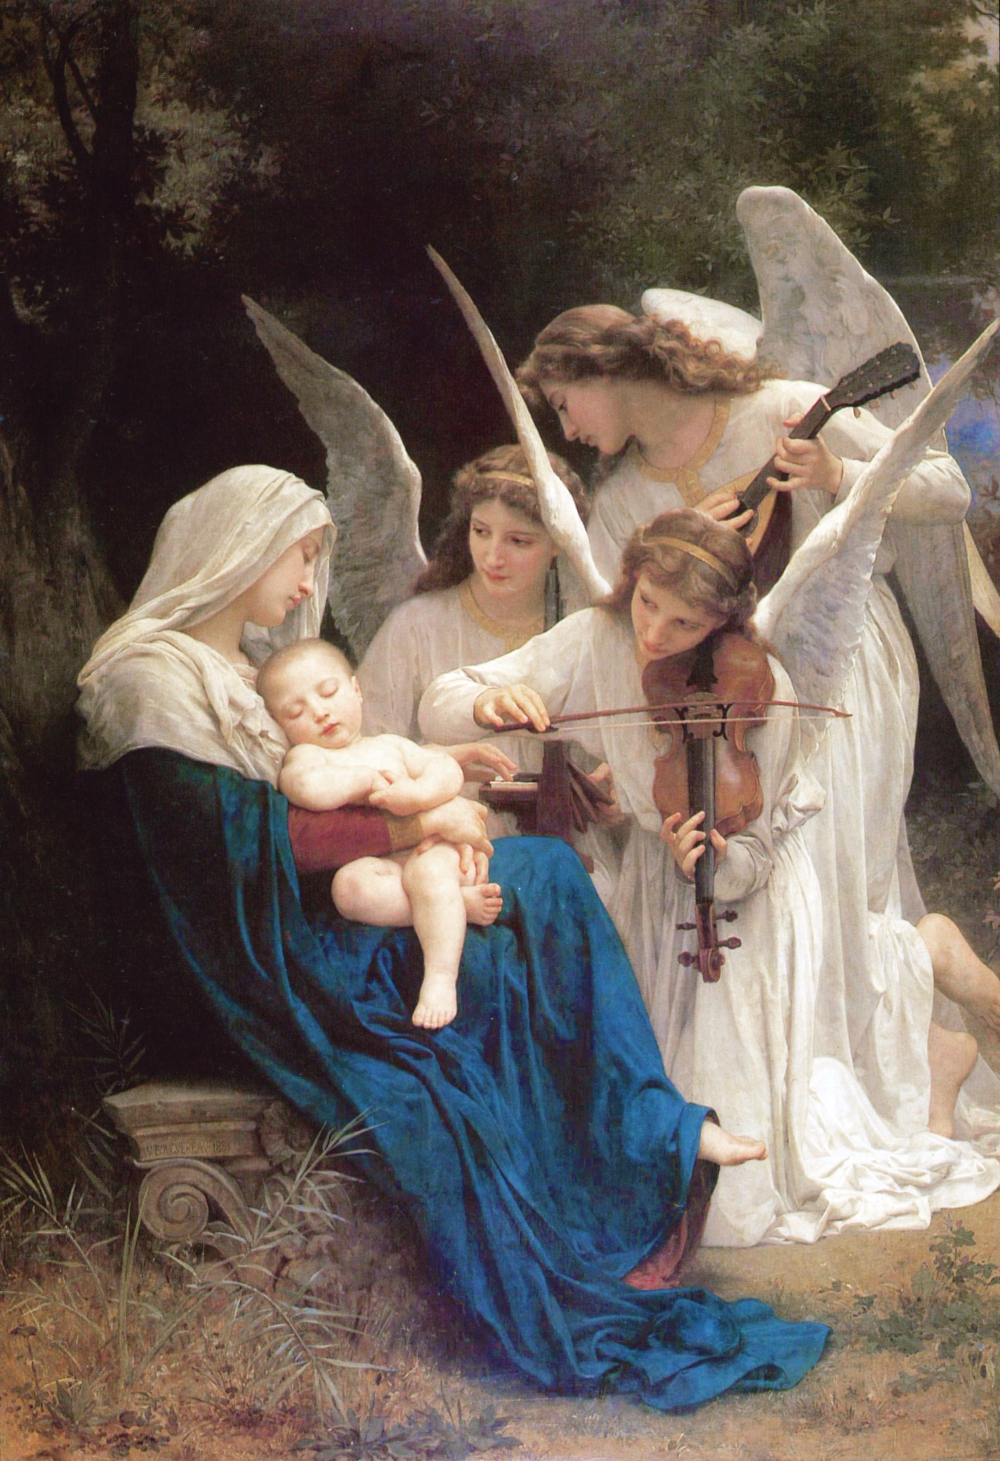 01. Song of the Angels (1881) William-Adolphe Bouguereau.jpg